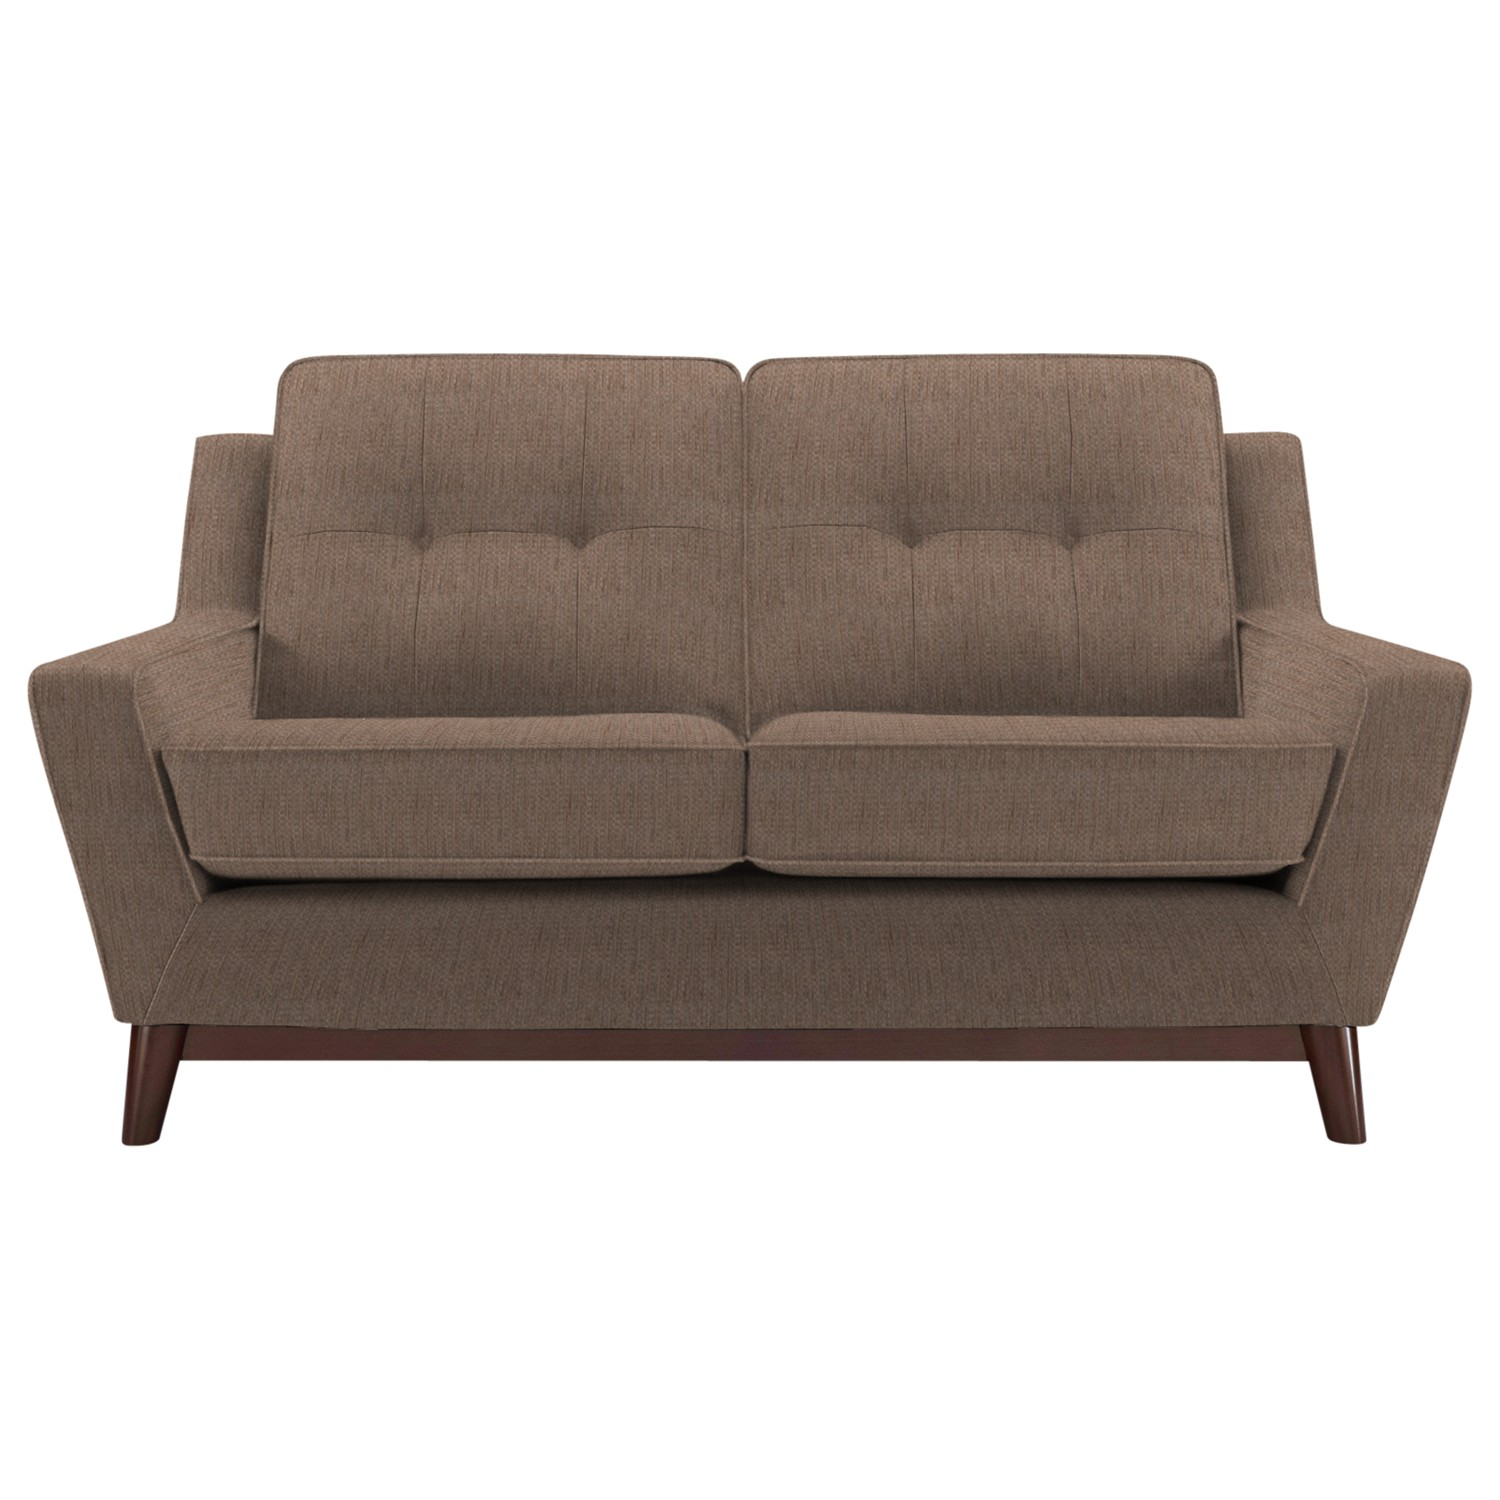 where to place cute small couches for sale couch sofa